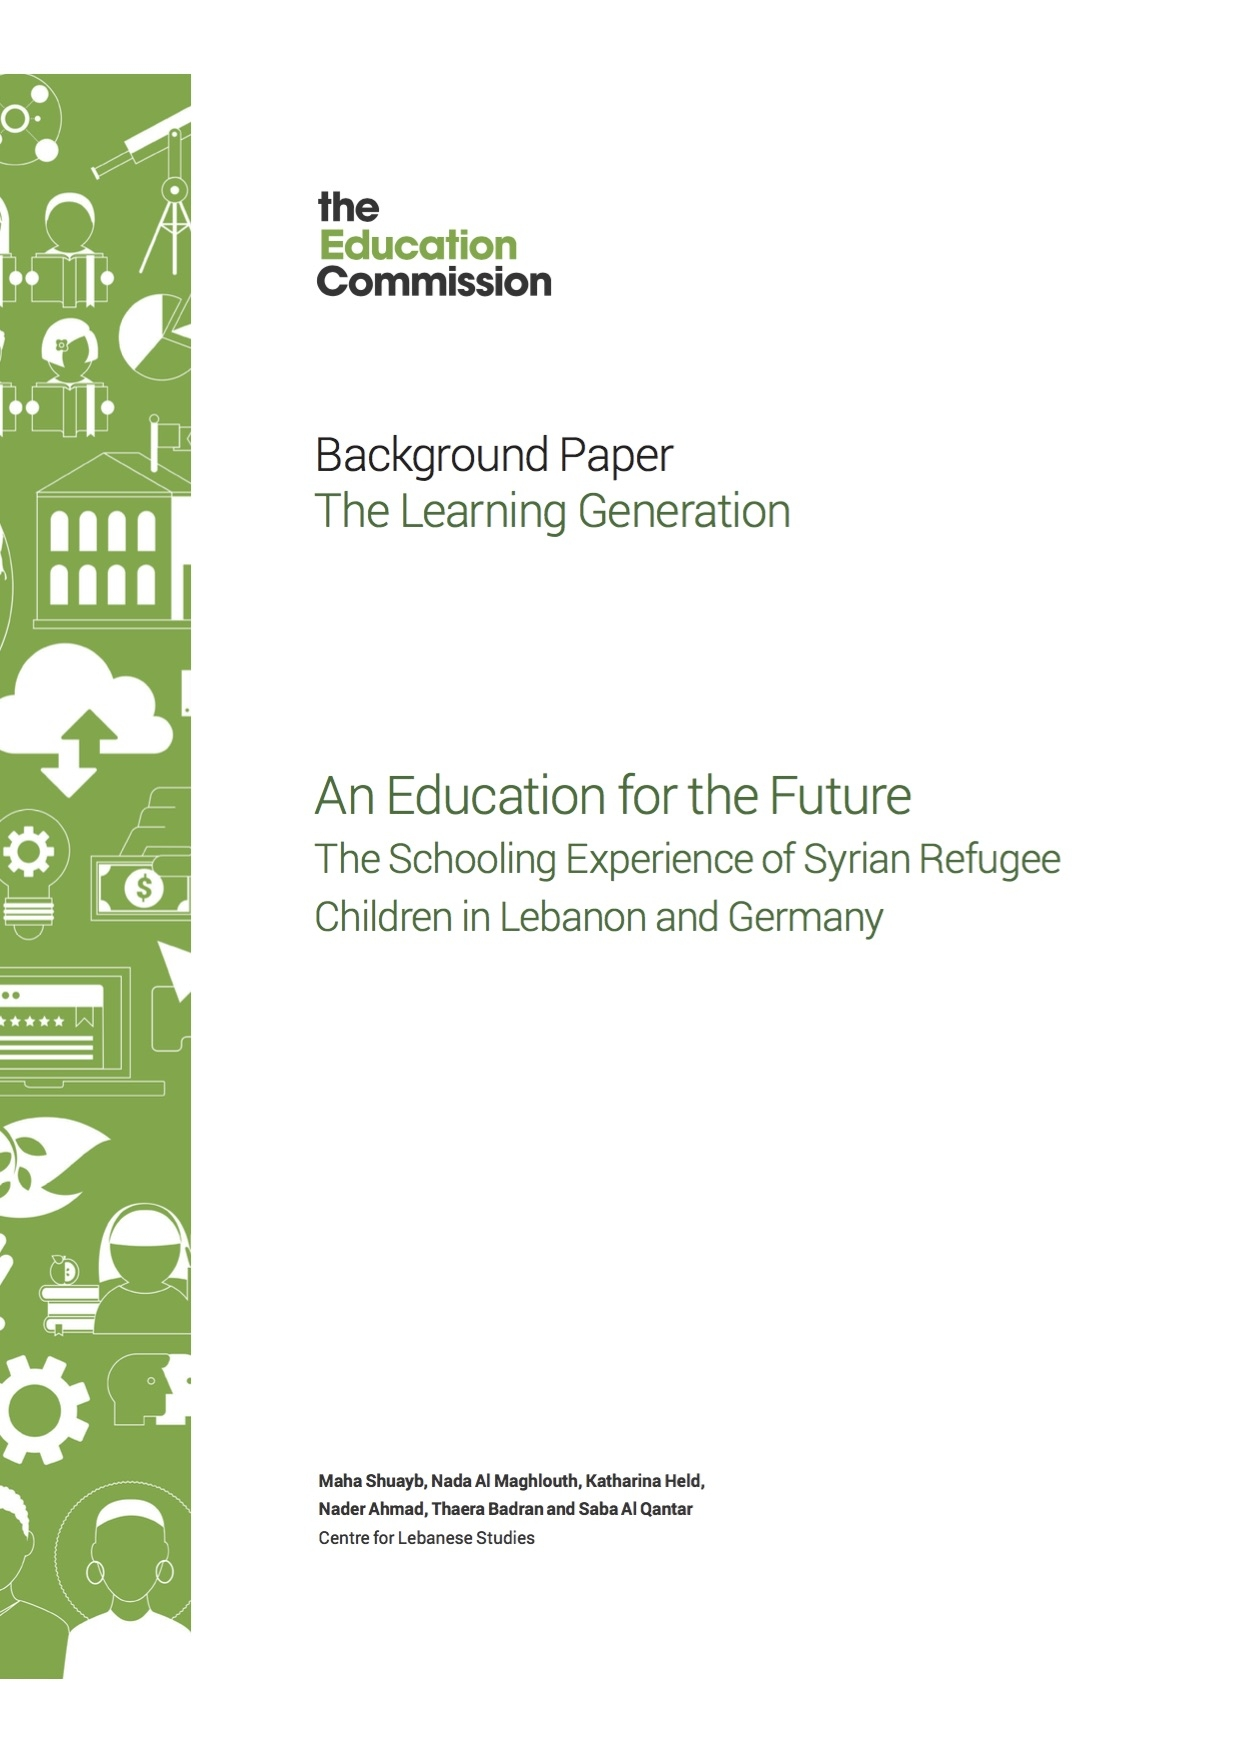 An Education For The Future: The Schooling Experience Of Syrian Refugee Children In Lebanon And Germany